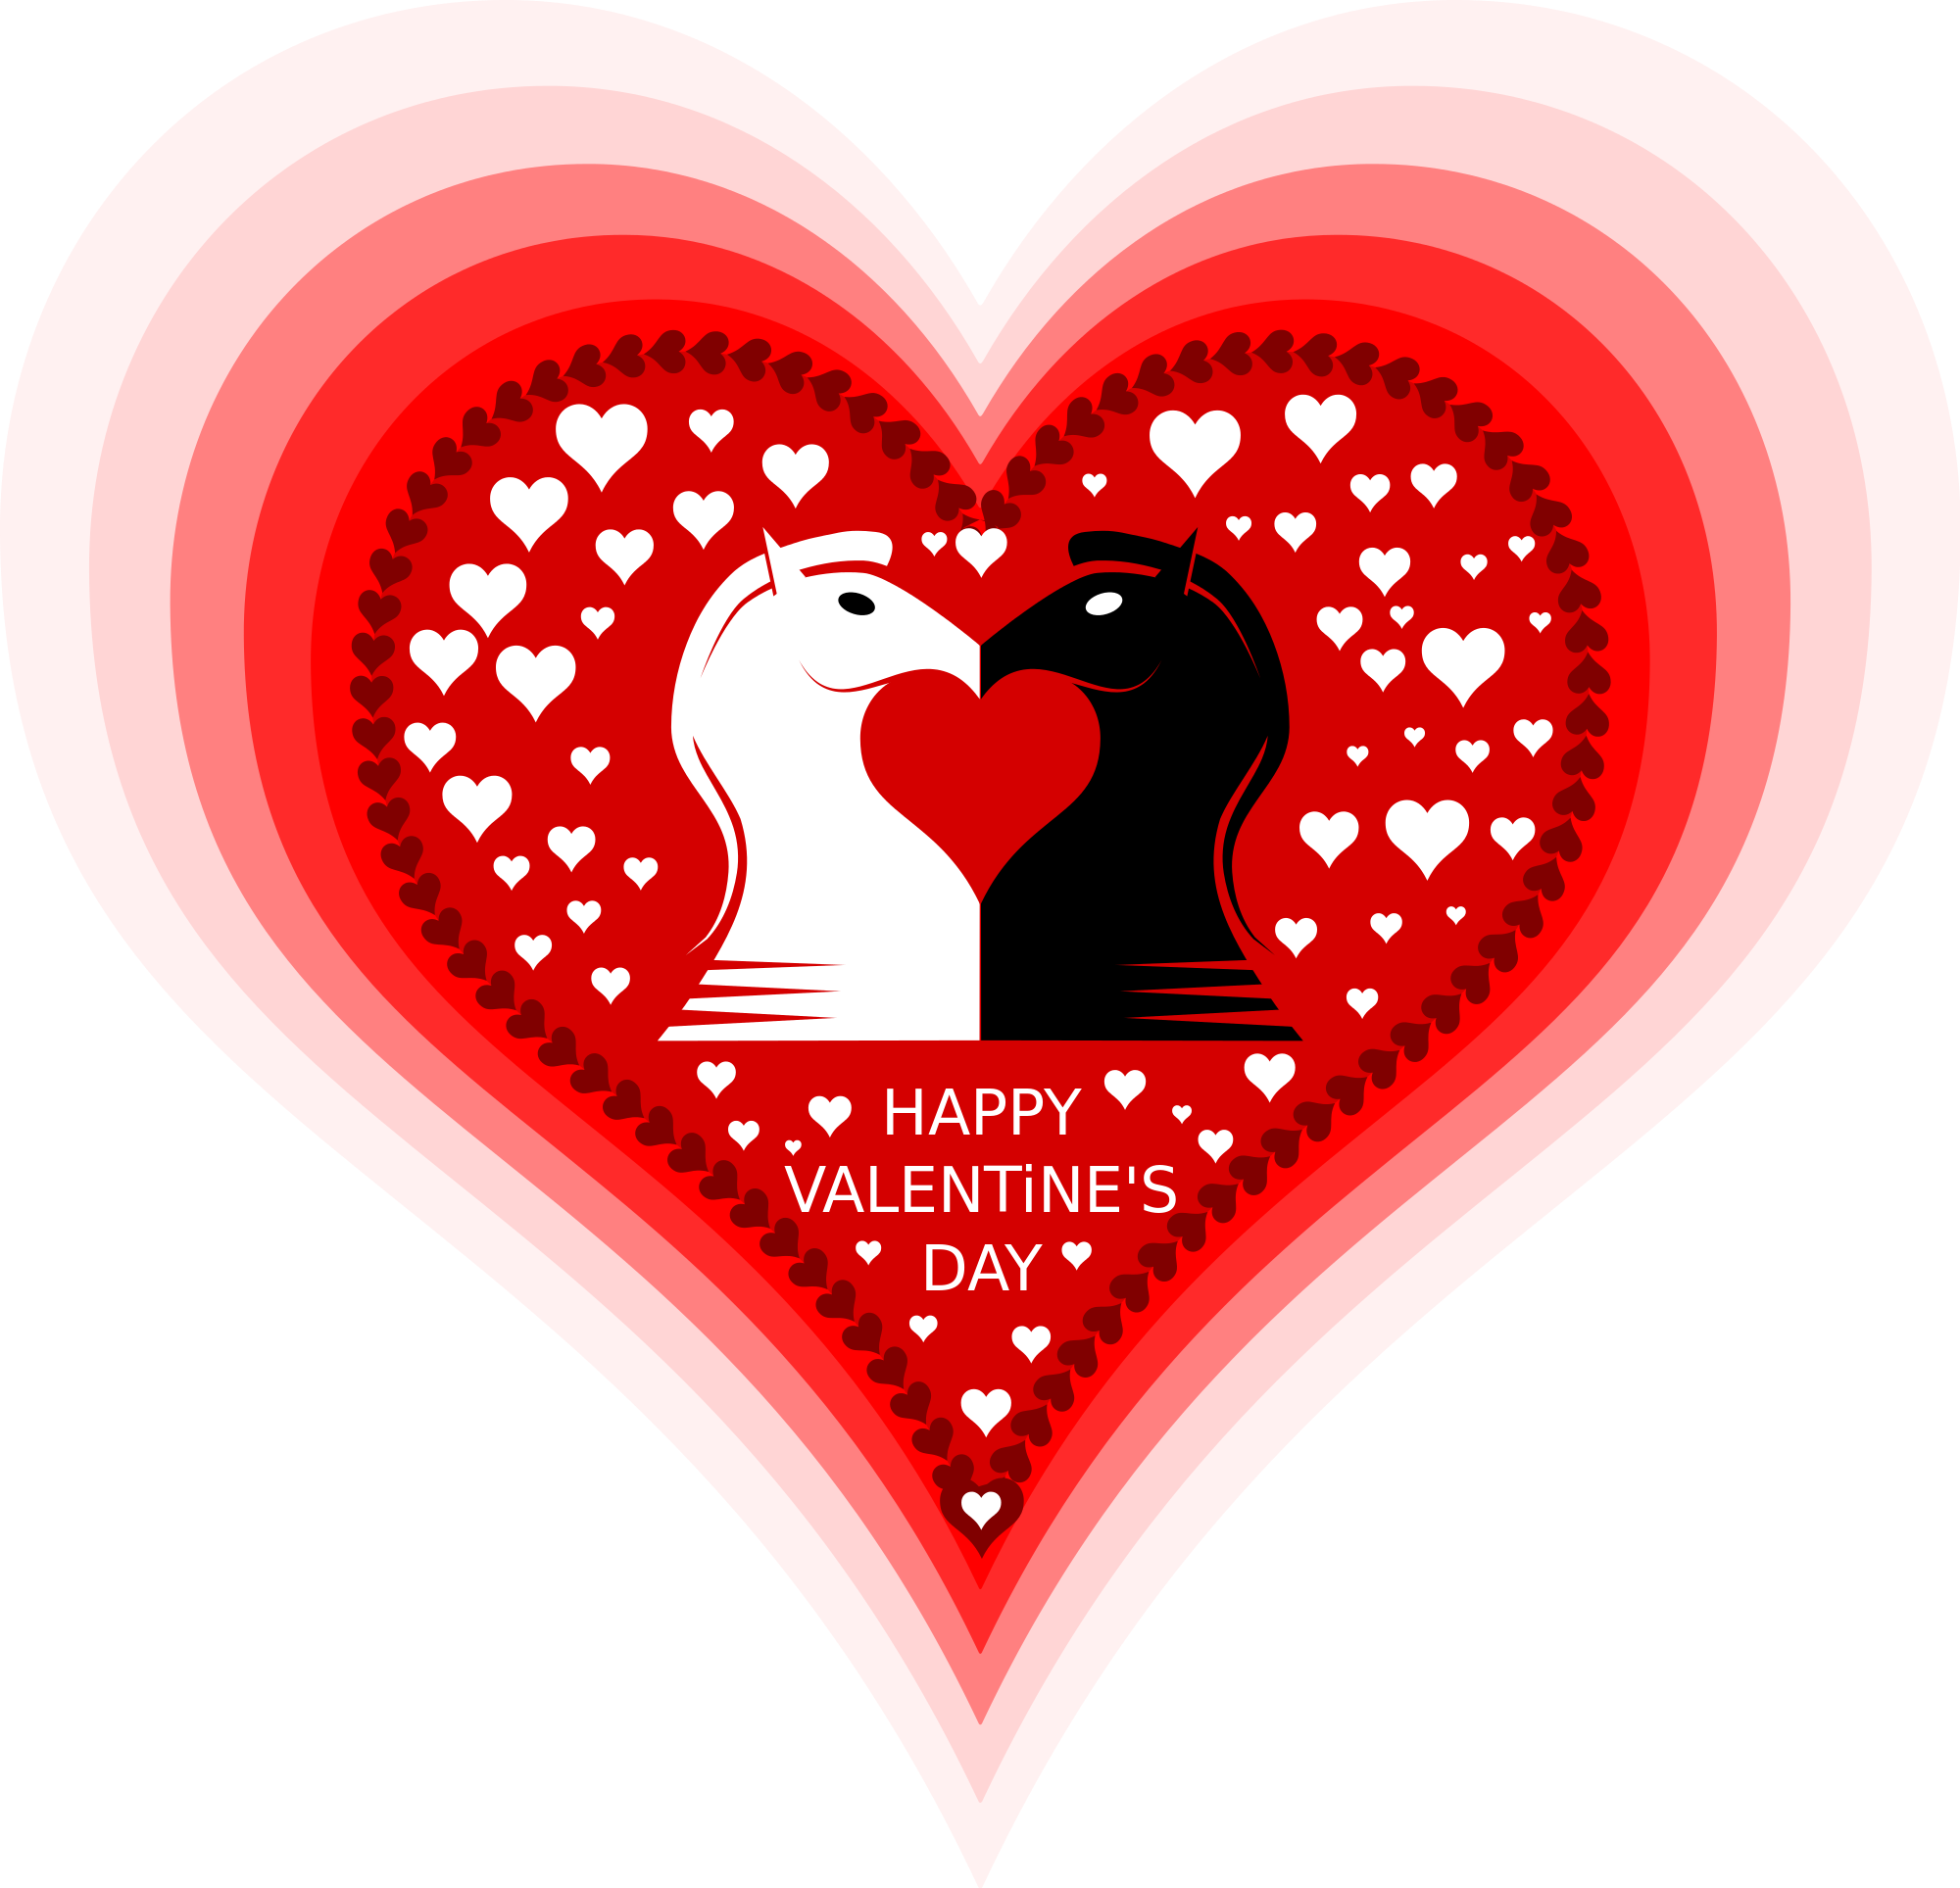 Peanuts clipart svg. File valentines day kiss